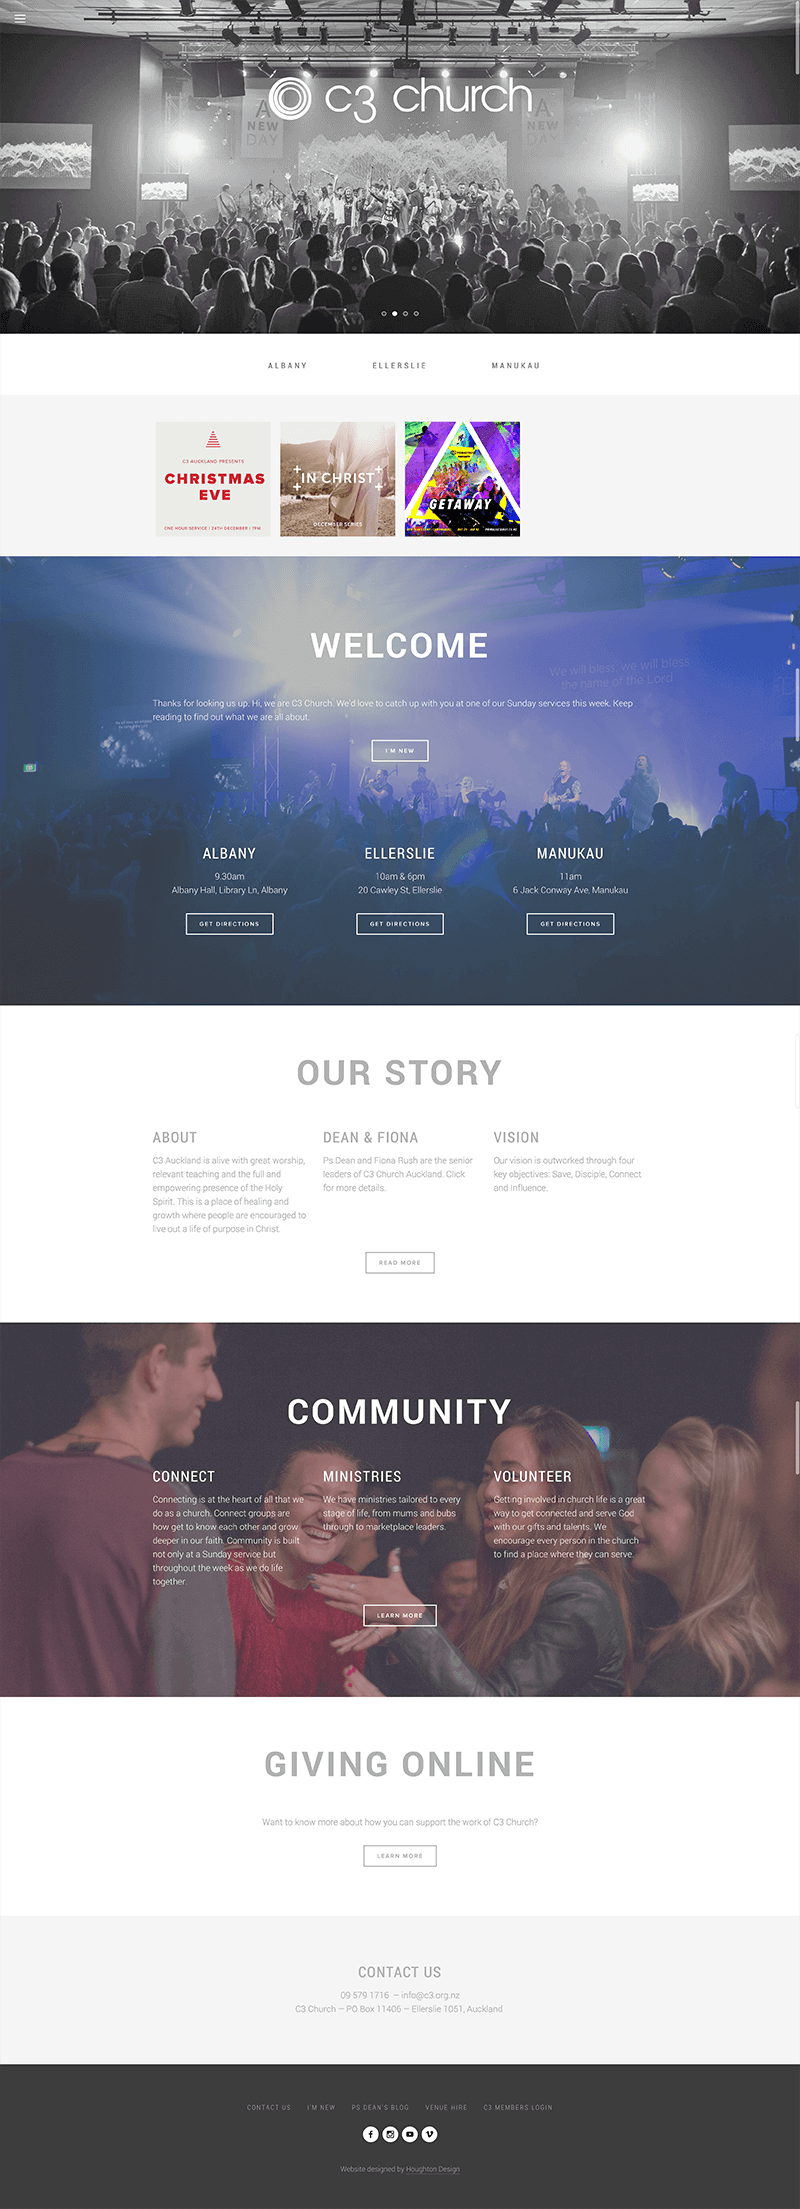 C3 Auckland - Home page